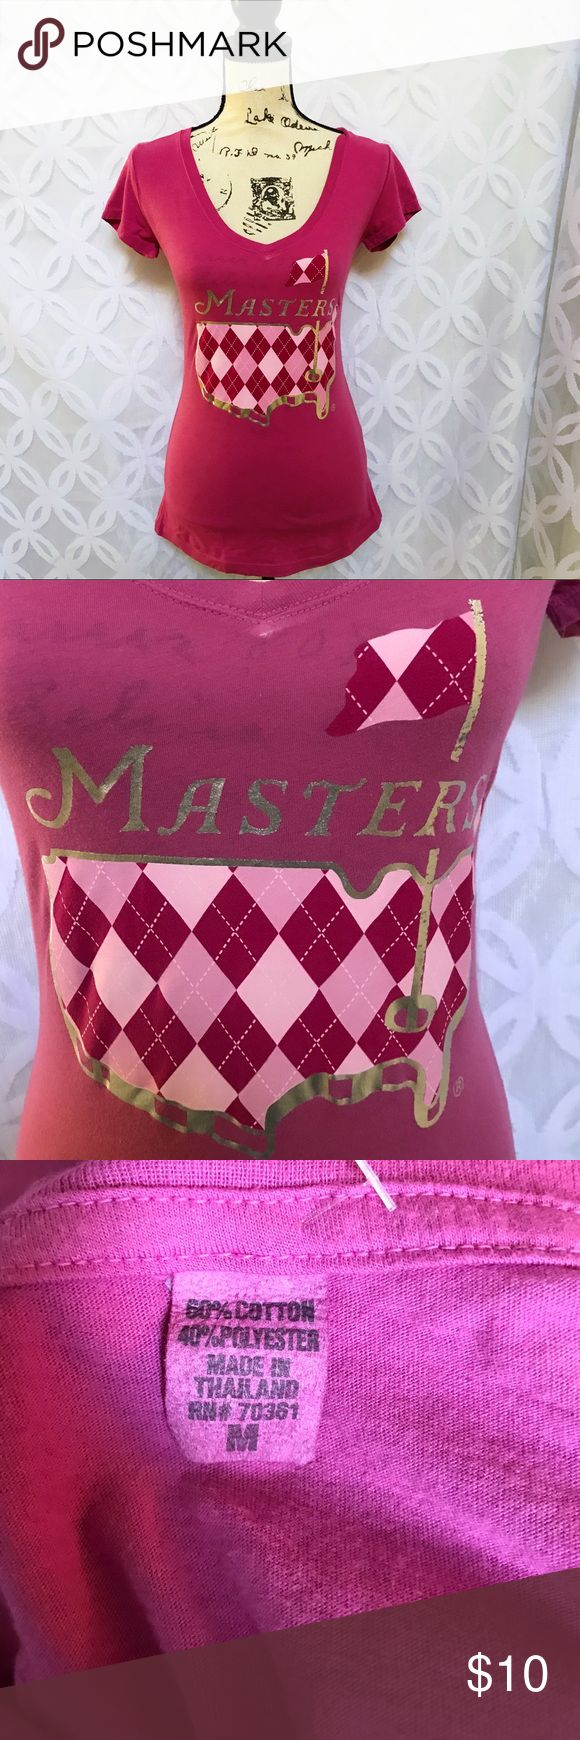 """PGA Master Augusta National Golf Club Tee PGA Master Augusta National Golf Club Tee NWOT.                   Measurements Laying Flat Size  M Armpit to Armpit 17"""" Shoulder to Hem 27"""" Bundle to Save  Sorry NO outside transactions  NO trades  Reasonable Offers welcomed  NO Low balling  NO modeling  NO Holds All items from a pet and Smoke Free Home  Happy Poshing  Tops Tees - Short Sleeve"""